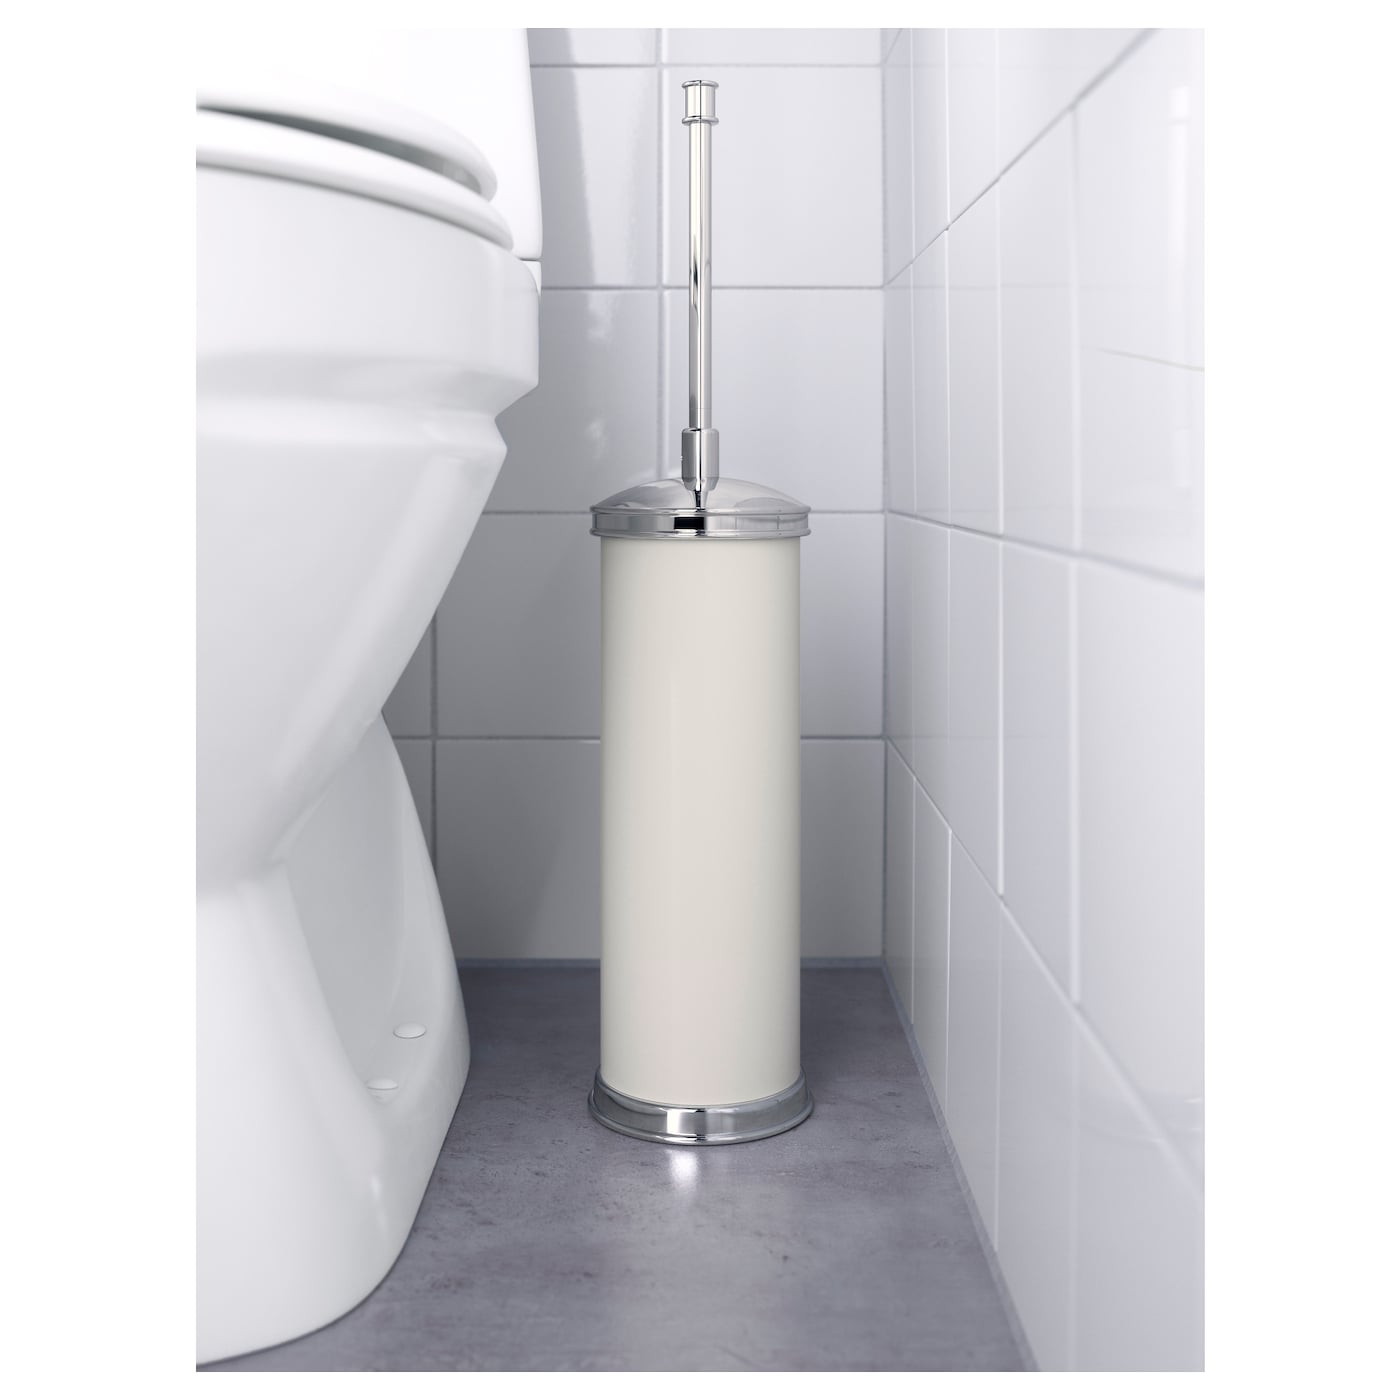 IKEA BALUNGEN toilet brush/holder